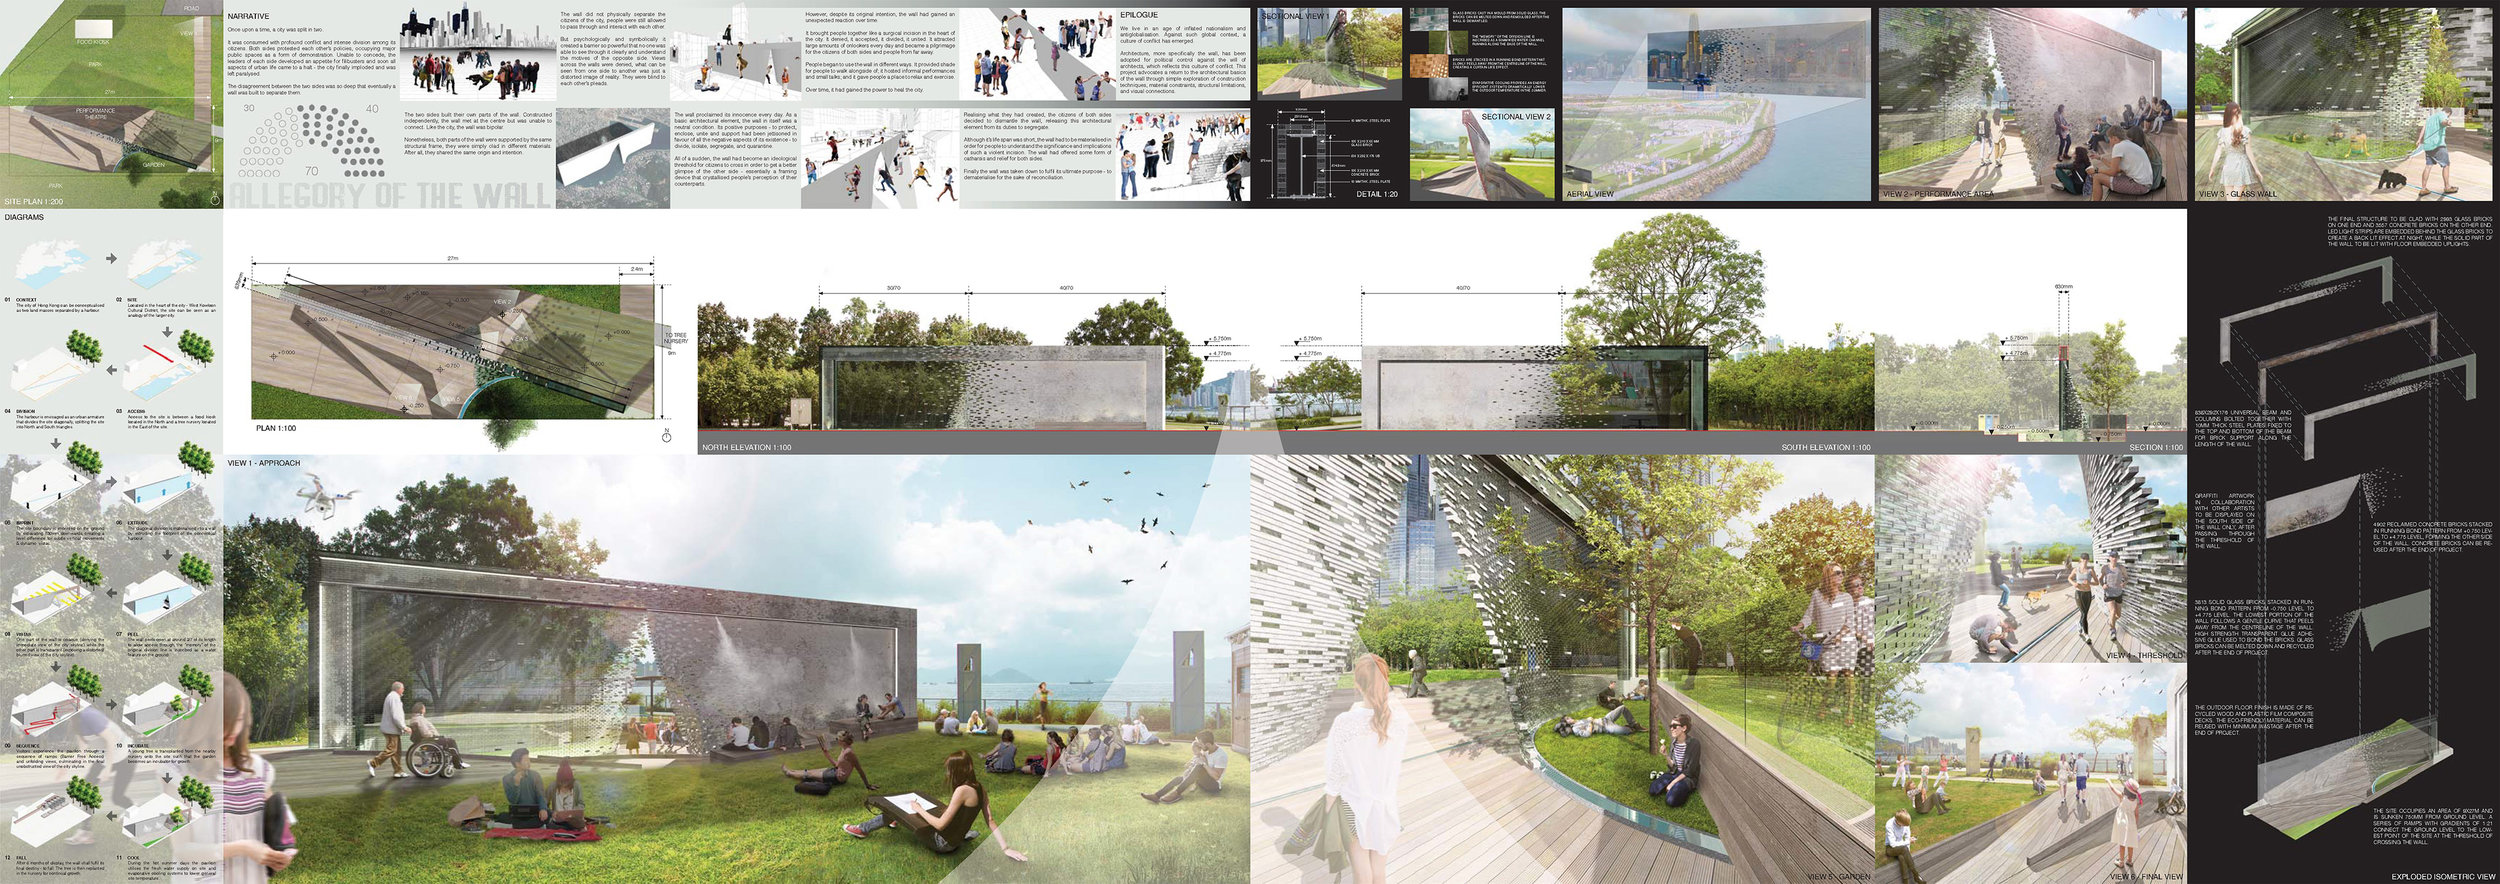 "June 26, 2017 - HONG KONG YOUNG ARCHITECTS & DESIGNERS COMPETITION 2017 SUBMISSIONJust completed the entry submission titled ""Allegory of the Wall"" for the Hong Kong Young Architects & Designers Competition 2017. Good luck to all participants!"